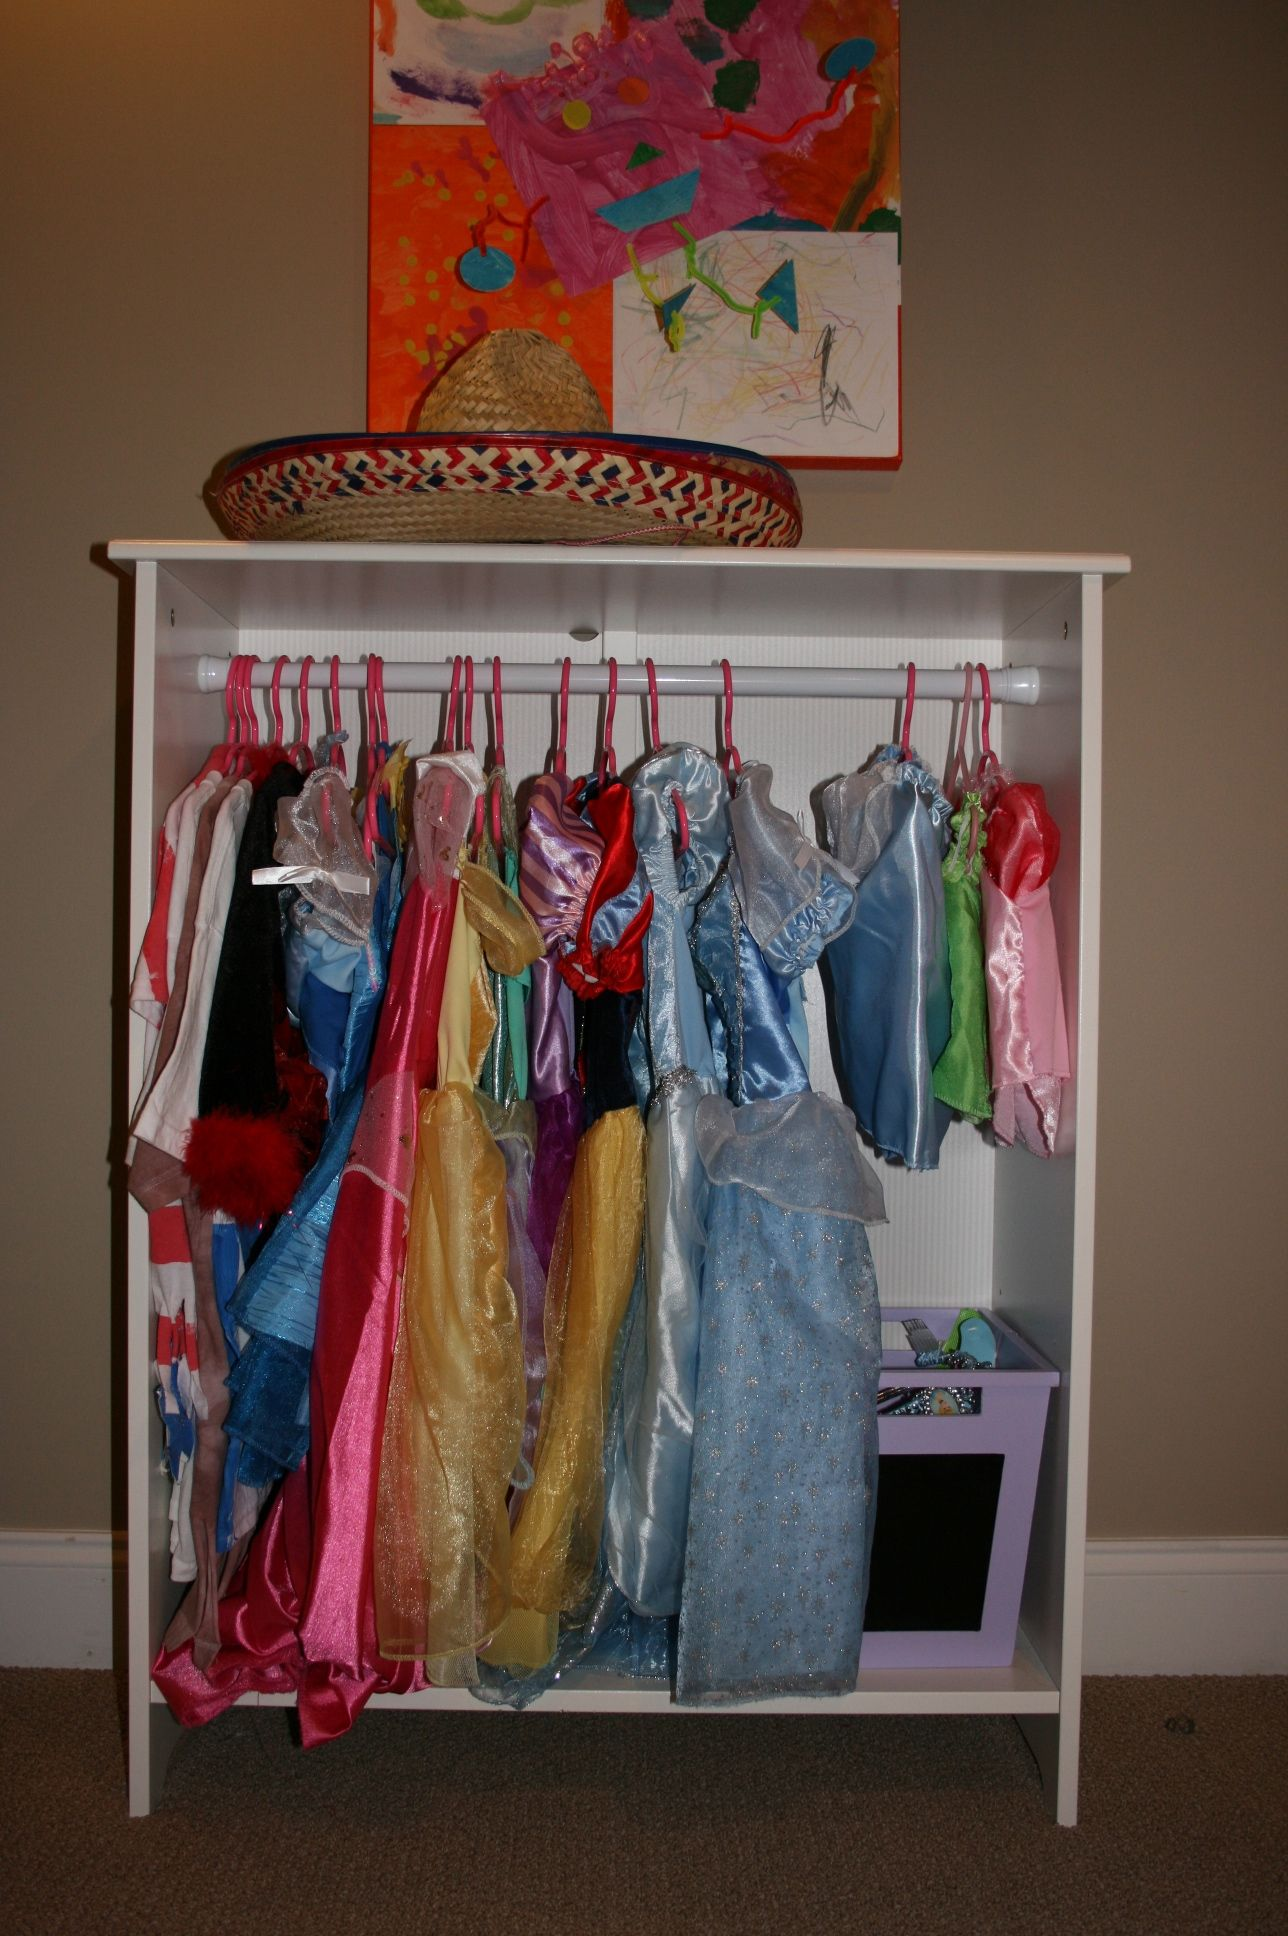 ikea bookshelf and tension rod = closet for dress up clothes. I'm doing the mini version of this for my son's dress-up collection. My hope is he uses his dress-up more when it's on display... Right now it's all in a plastic box and I'm not sure he even knows it's there.